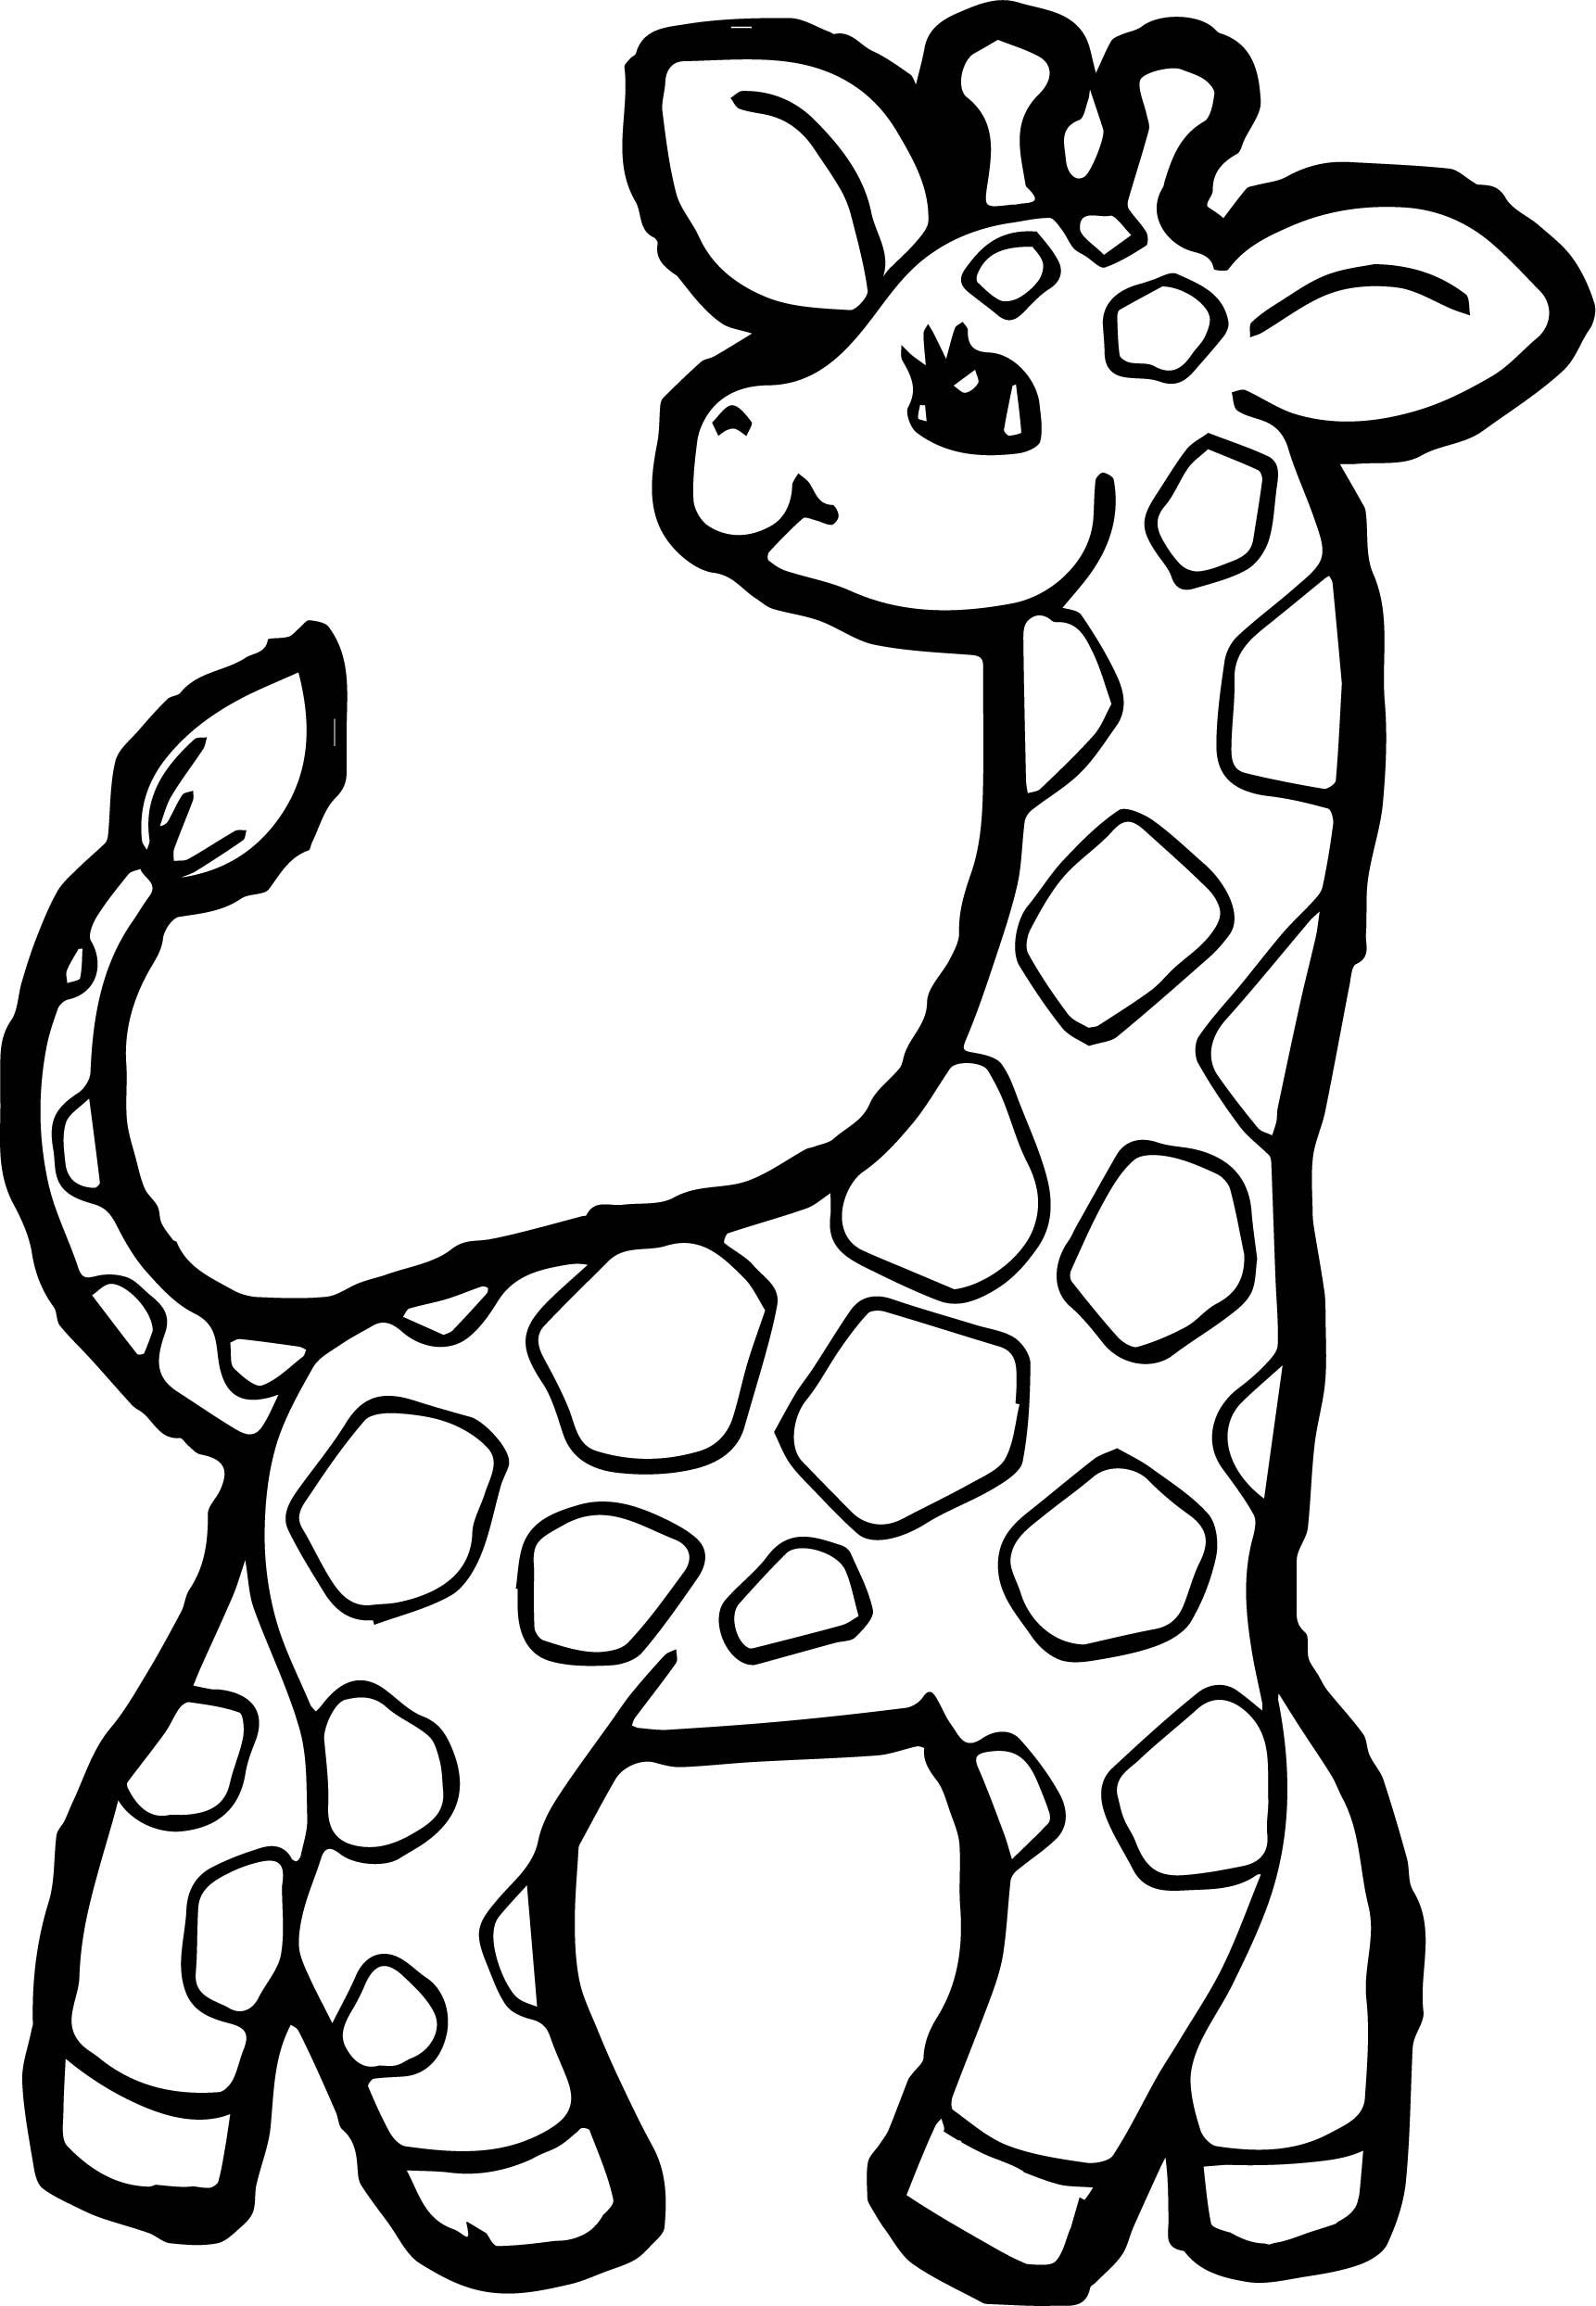 Awesome Small Giraffe Coloring Page Giraffe Coloring Pages